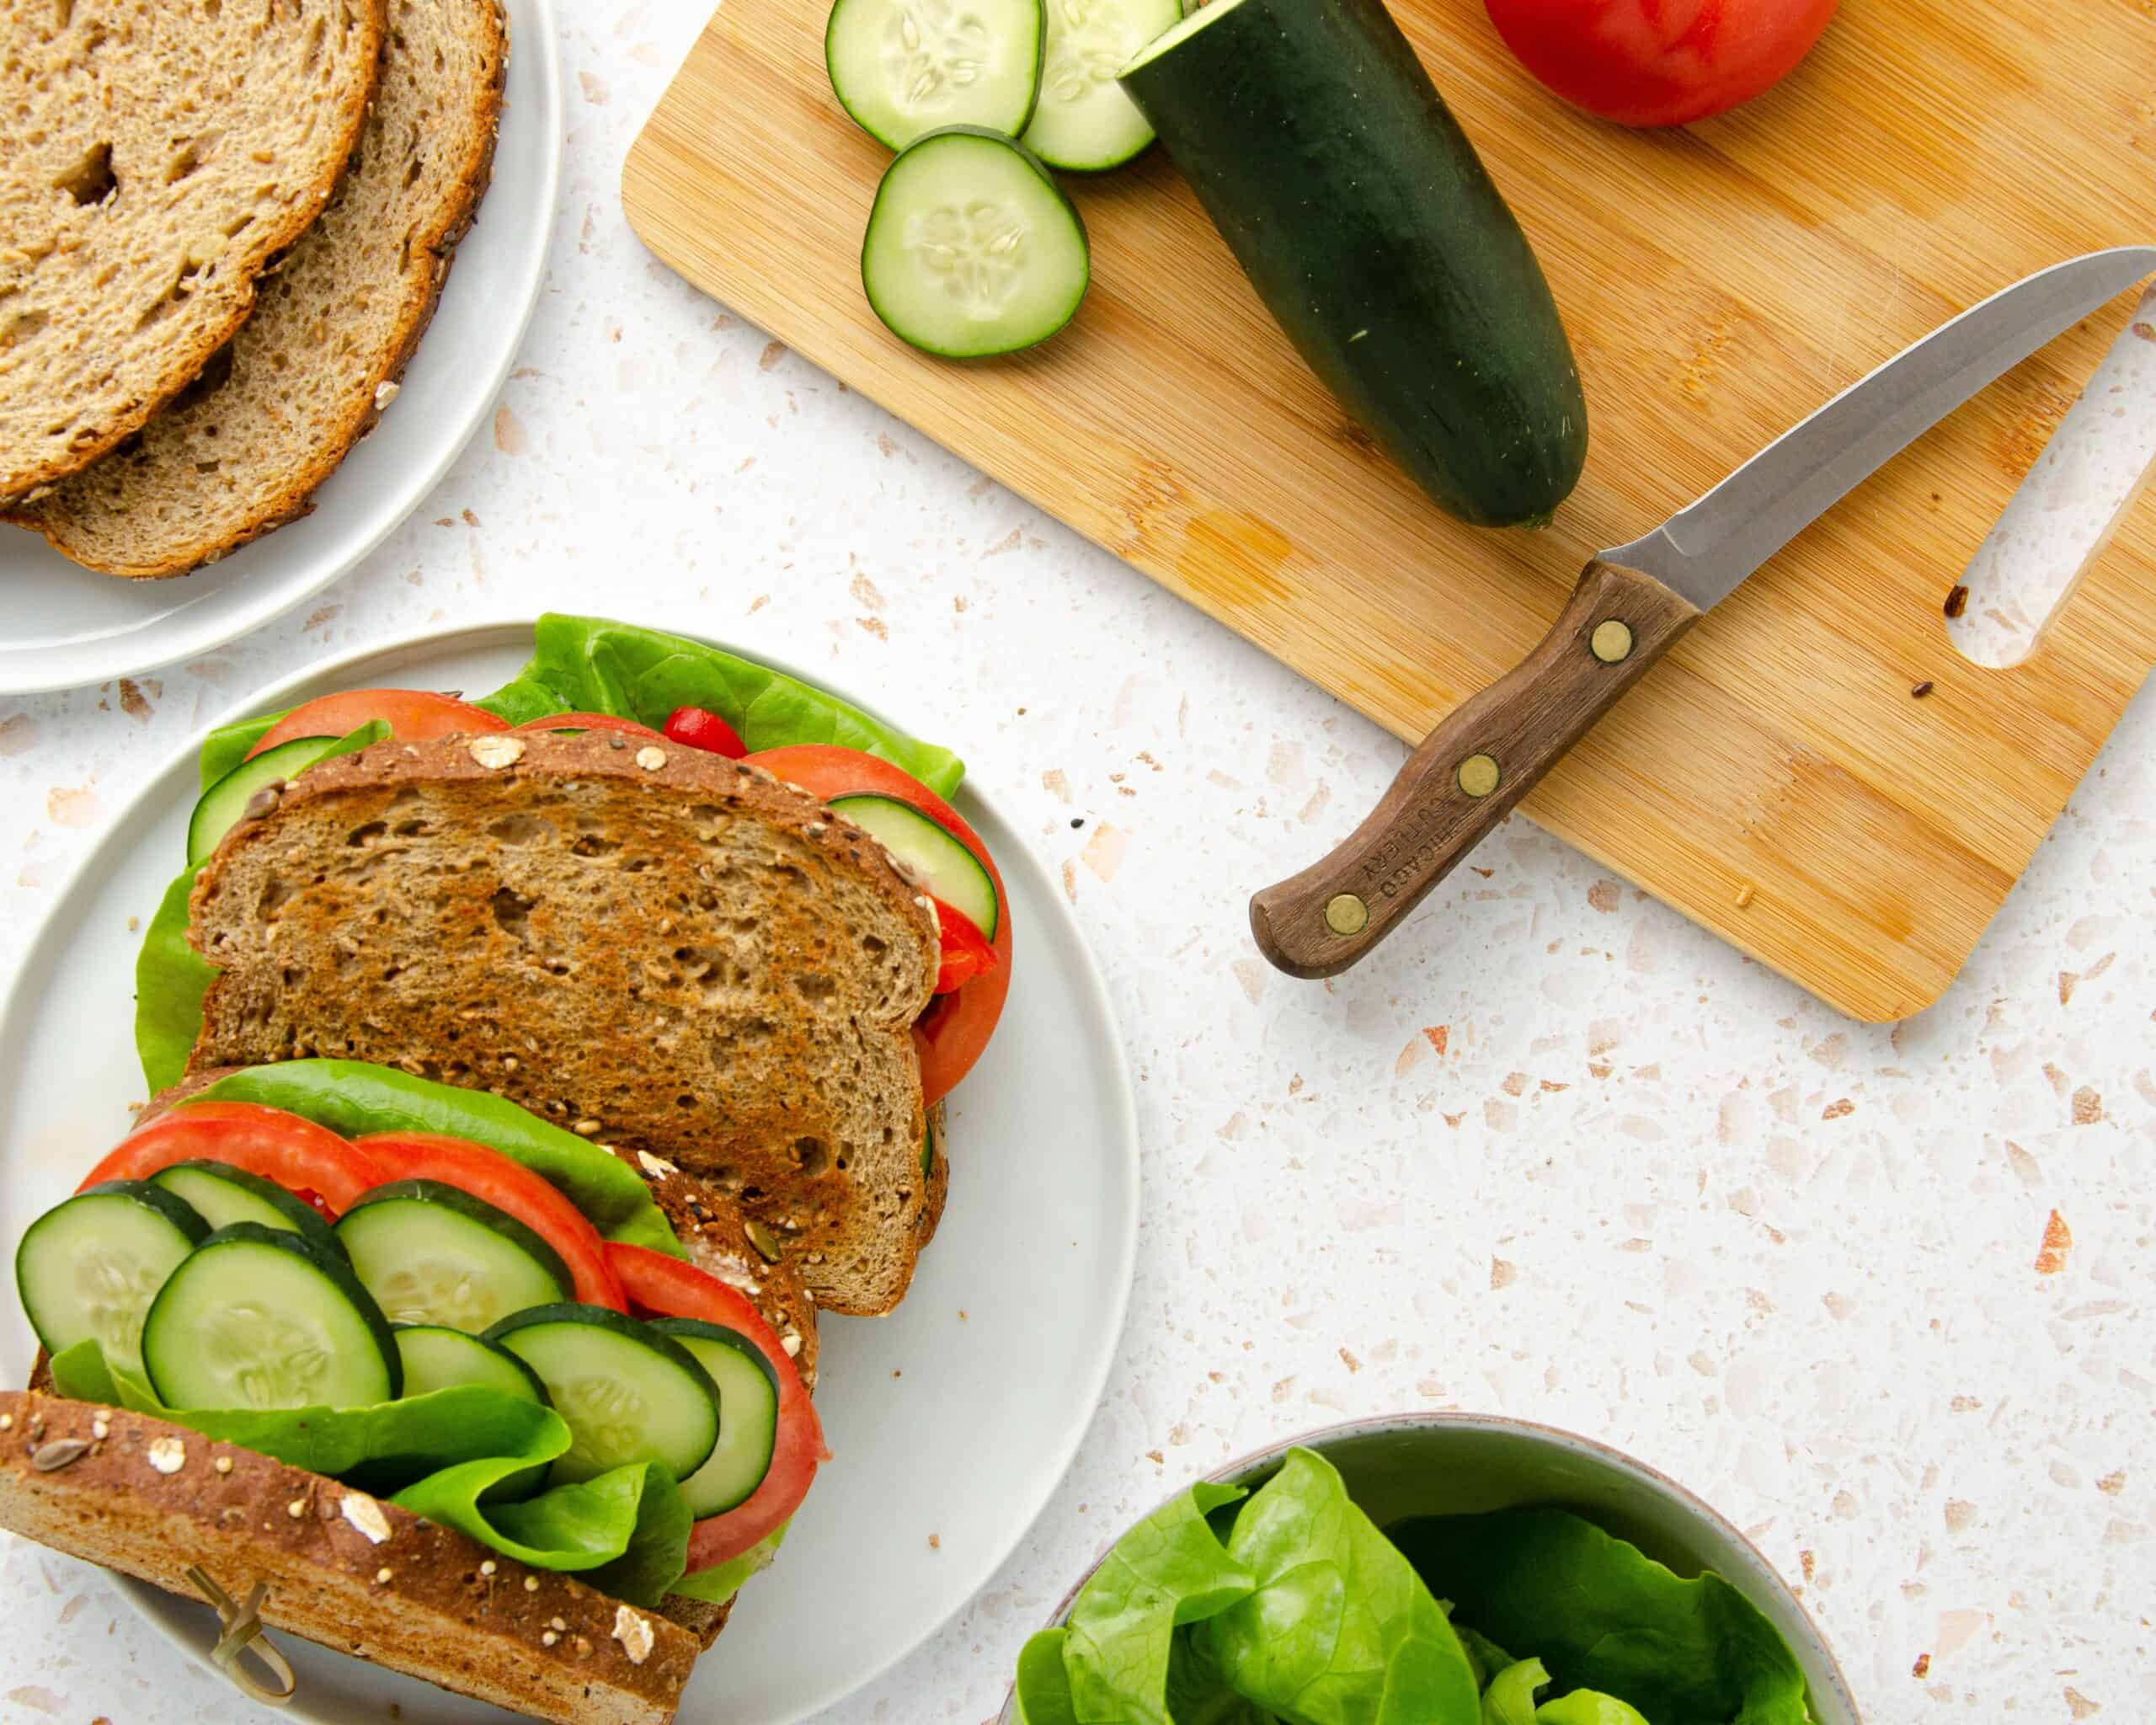 a plate of two panera mediterranean sandwiches with a bowl of butter lettuce, a plate of sandwich bread, and a cutting board of fresh sliced cucumbers and tomatoes surrounding it